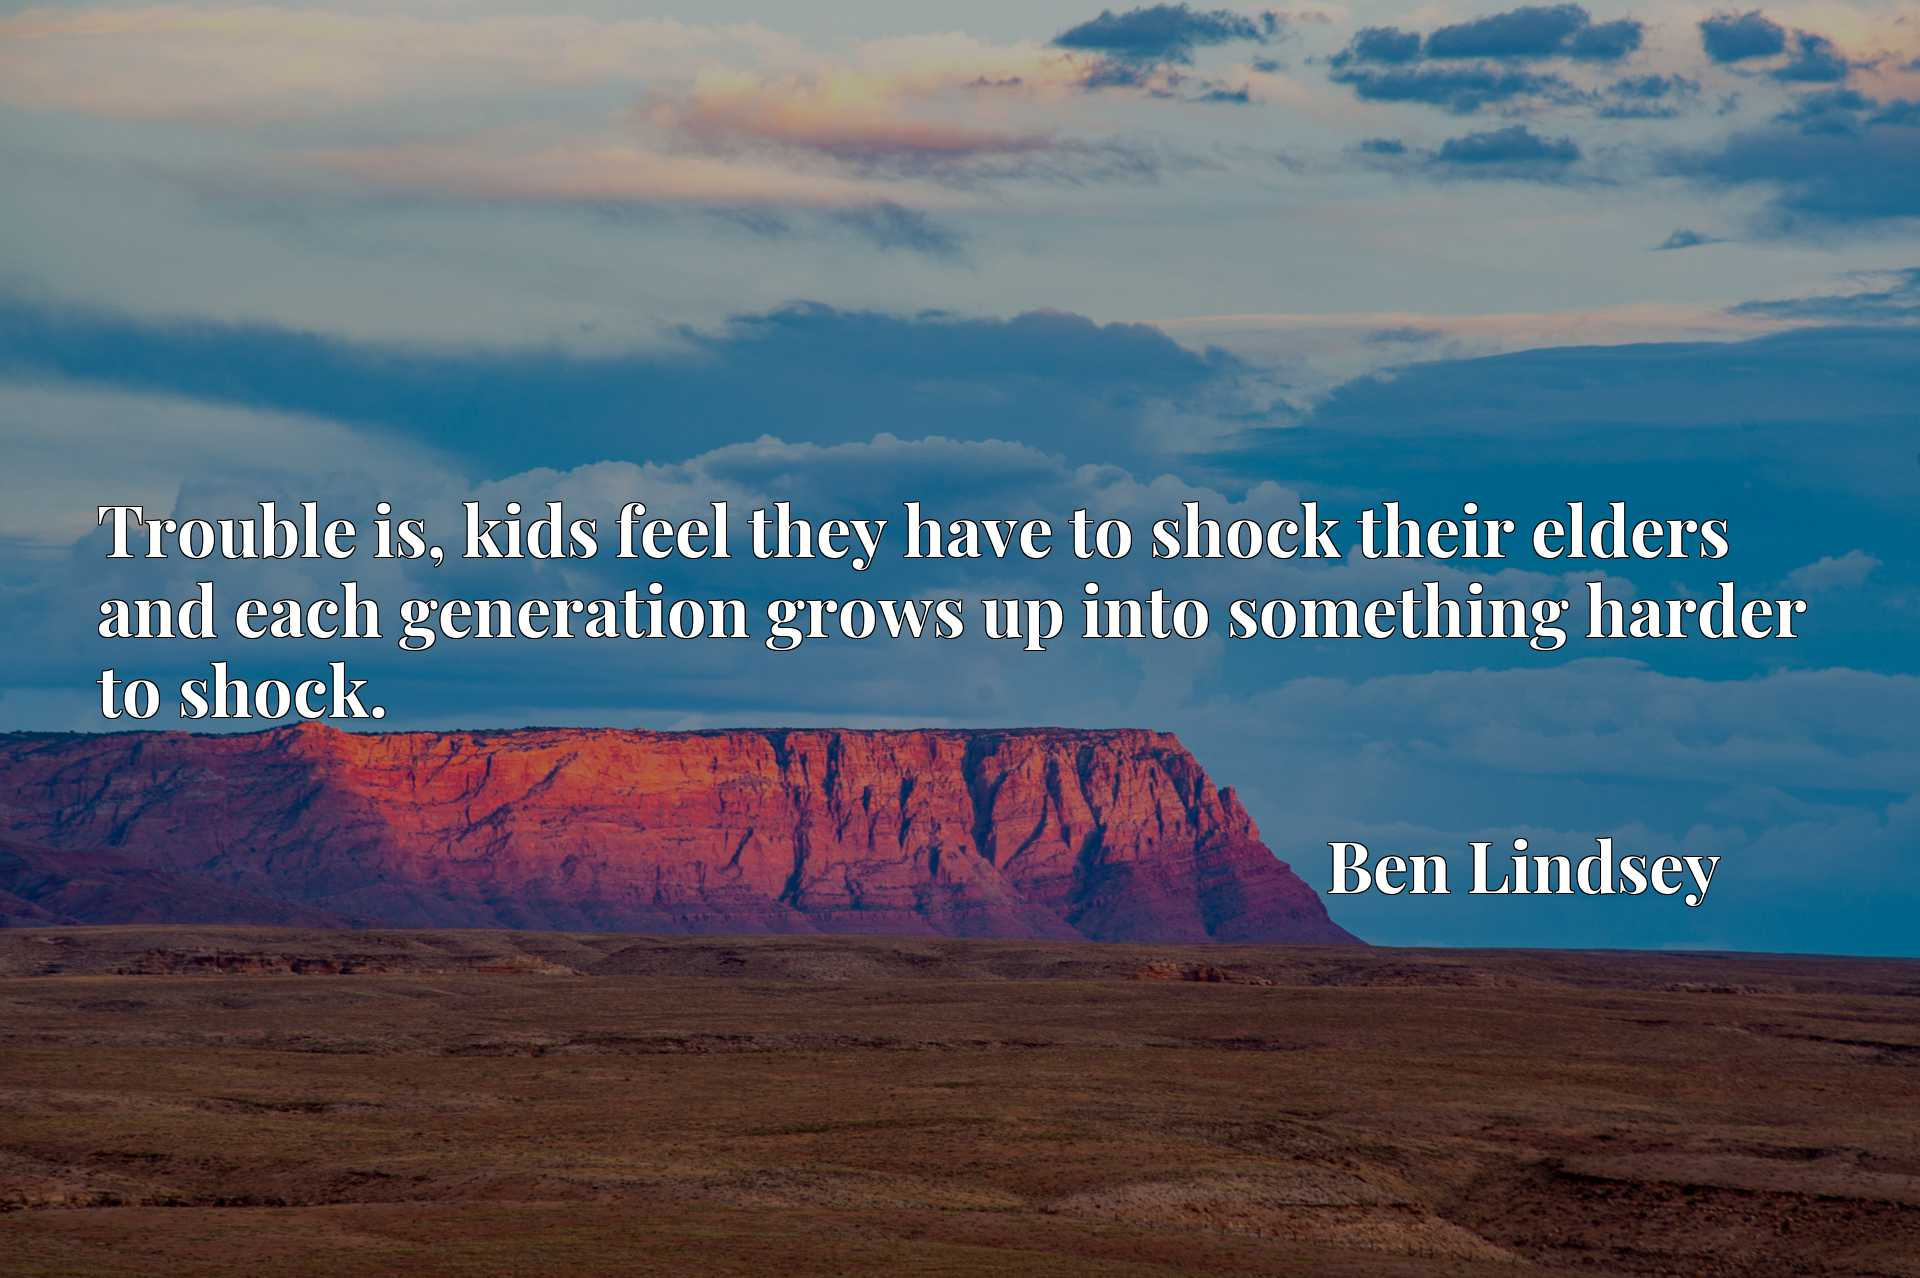 Trouble is, kids feel they have to shock their elders and each generation grows up into something harder to shock.